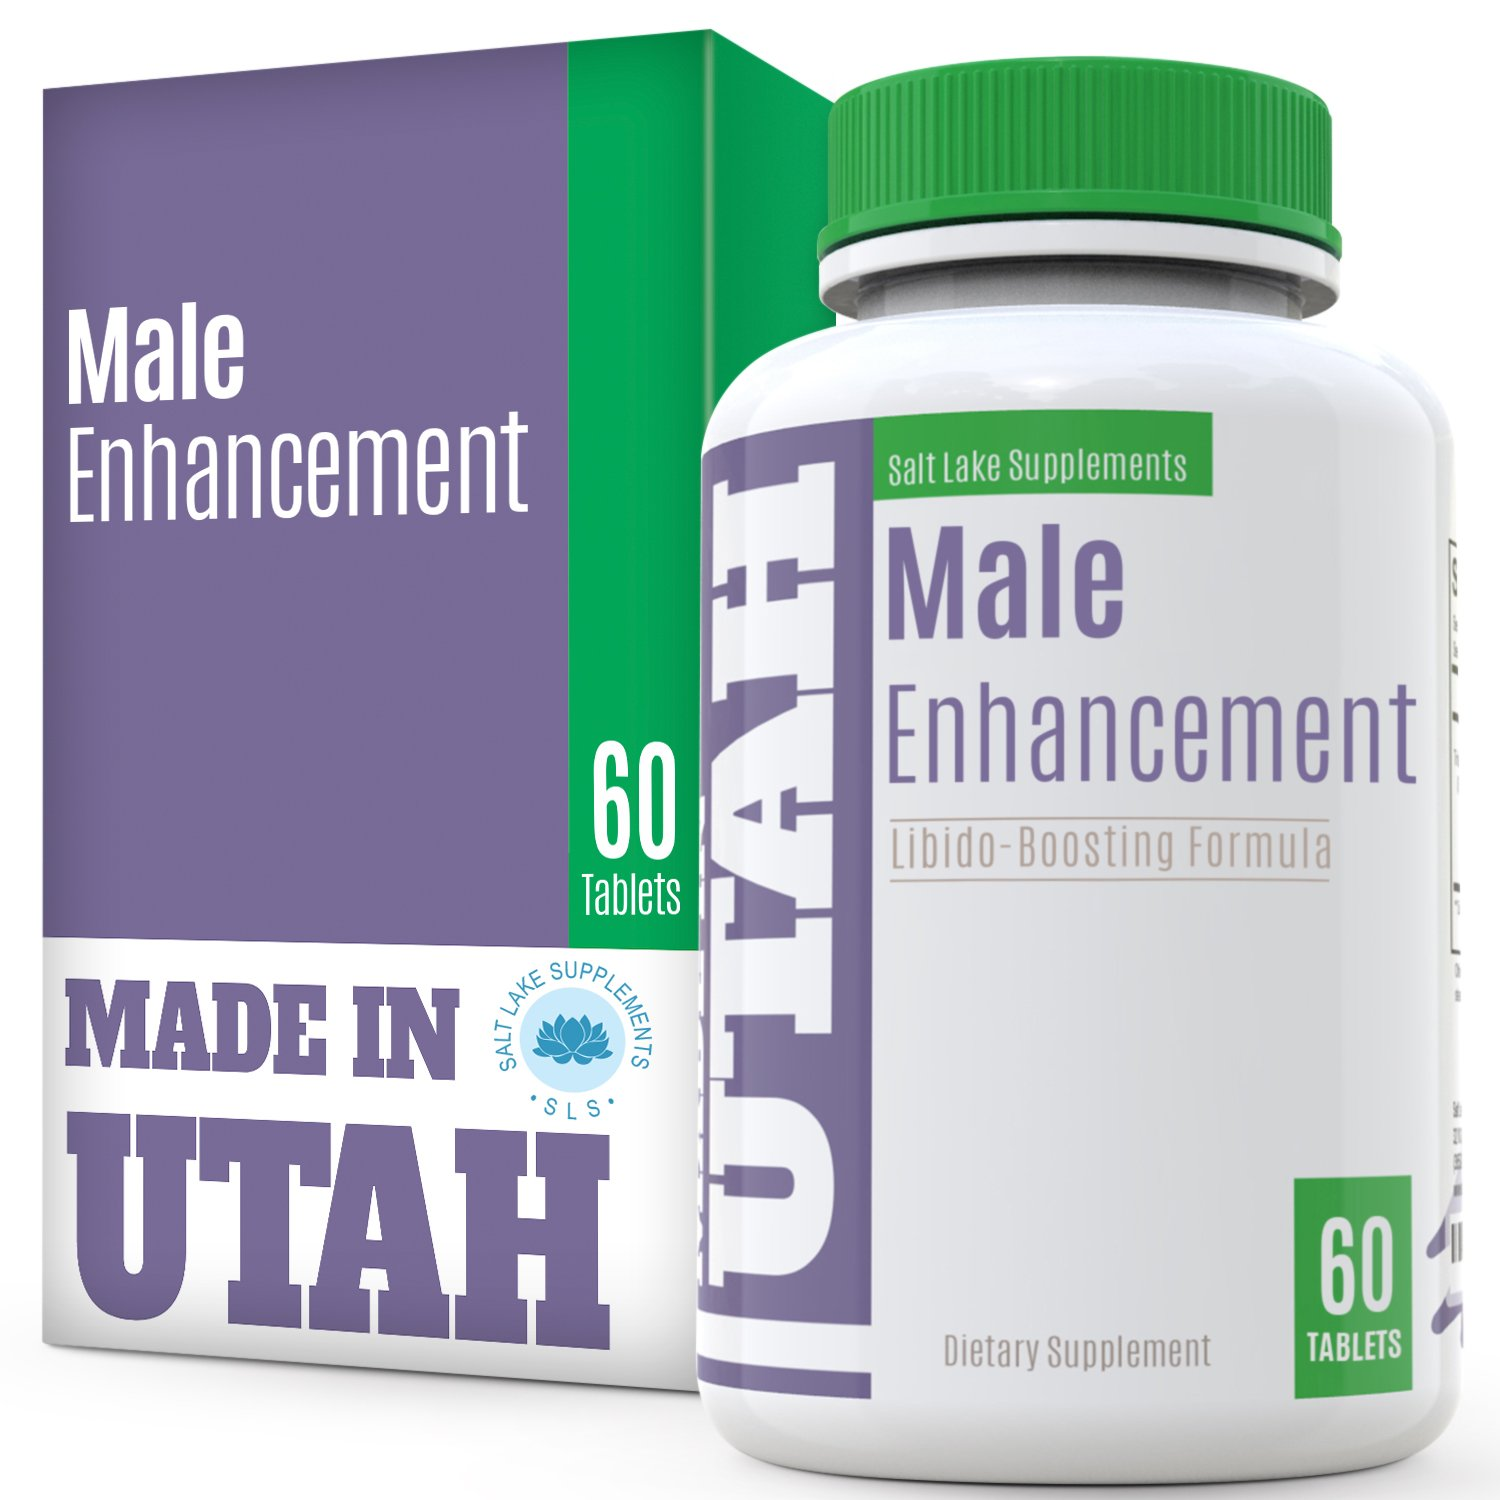 FLASH SALE - All Natural Male Enhancement Energy Boosting Formula With L-Arginine, Maca Root, Tongkat Ali & Ginseng To Improve Performance, Energy, Stamina For Pre Workout, 60 capsules